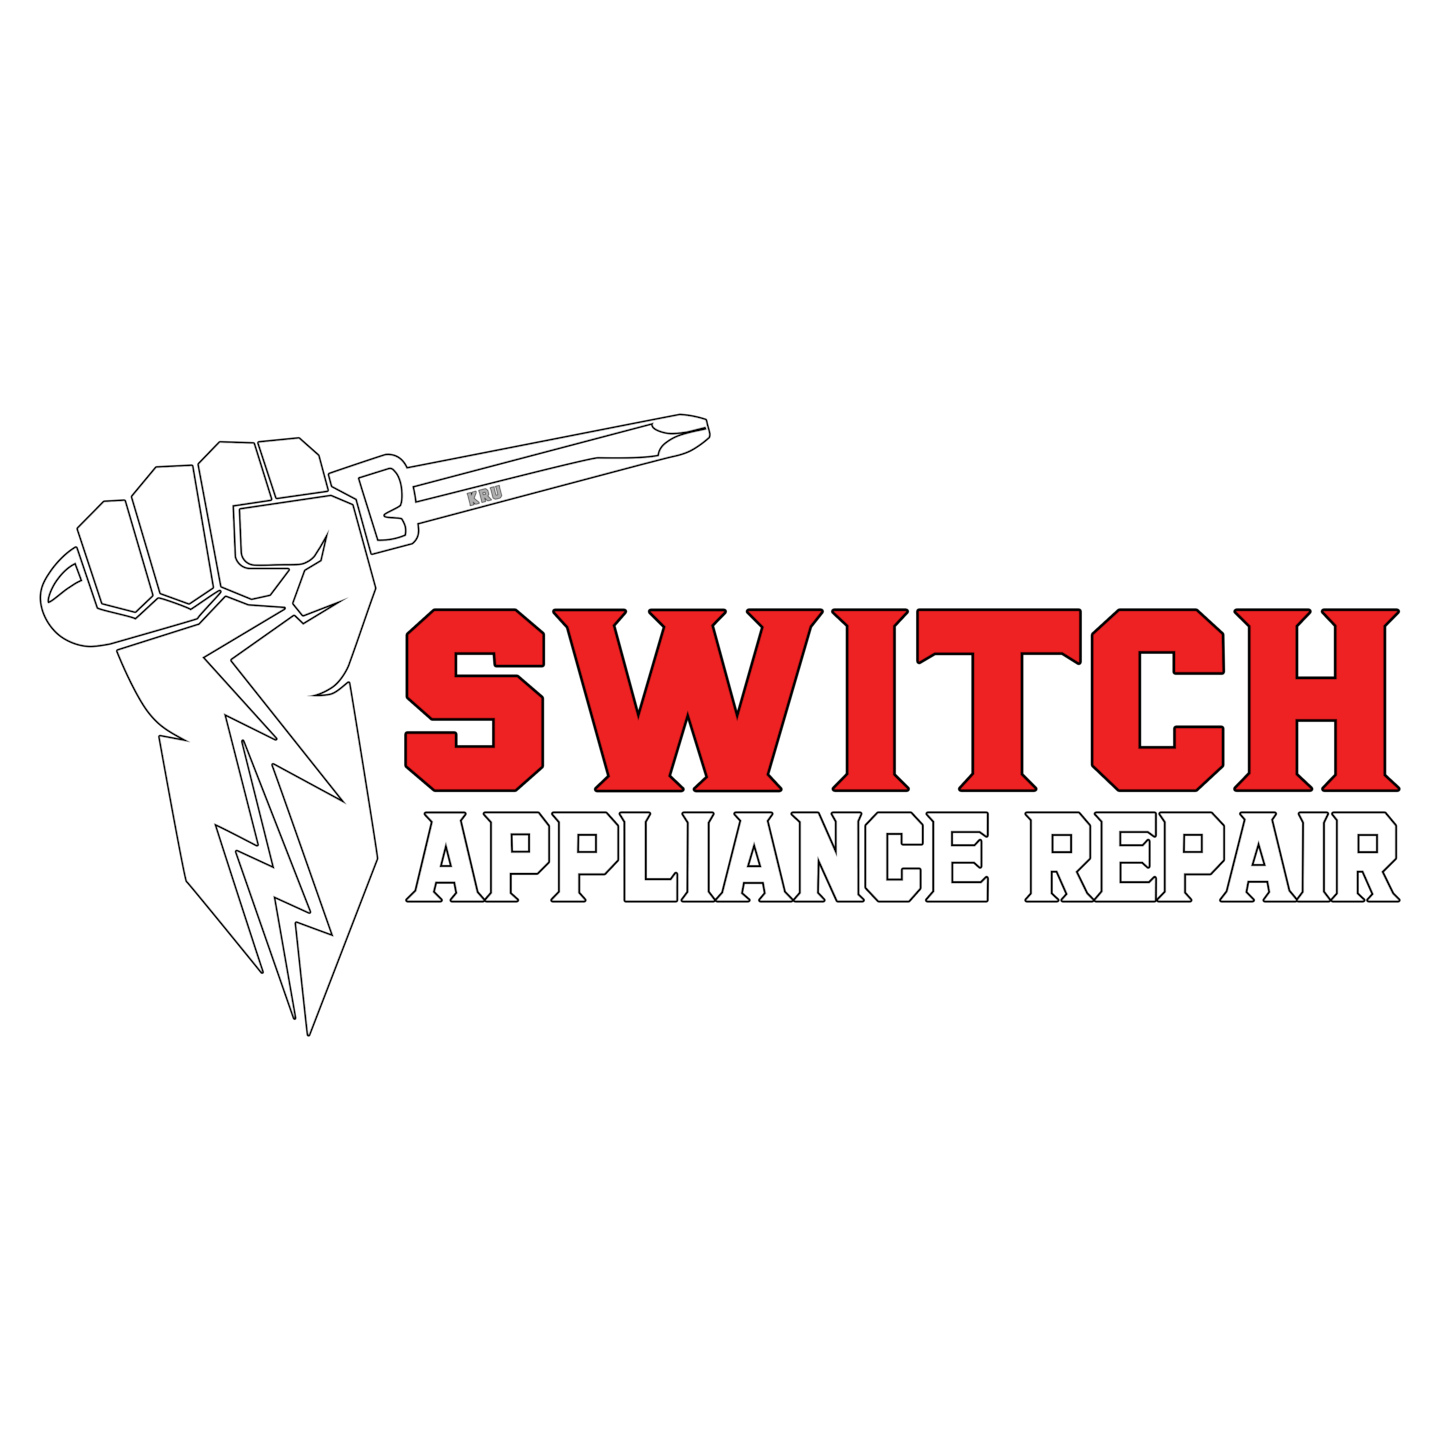 Switch Appliance Repair